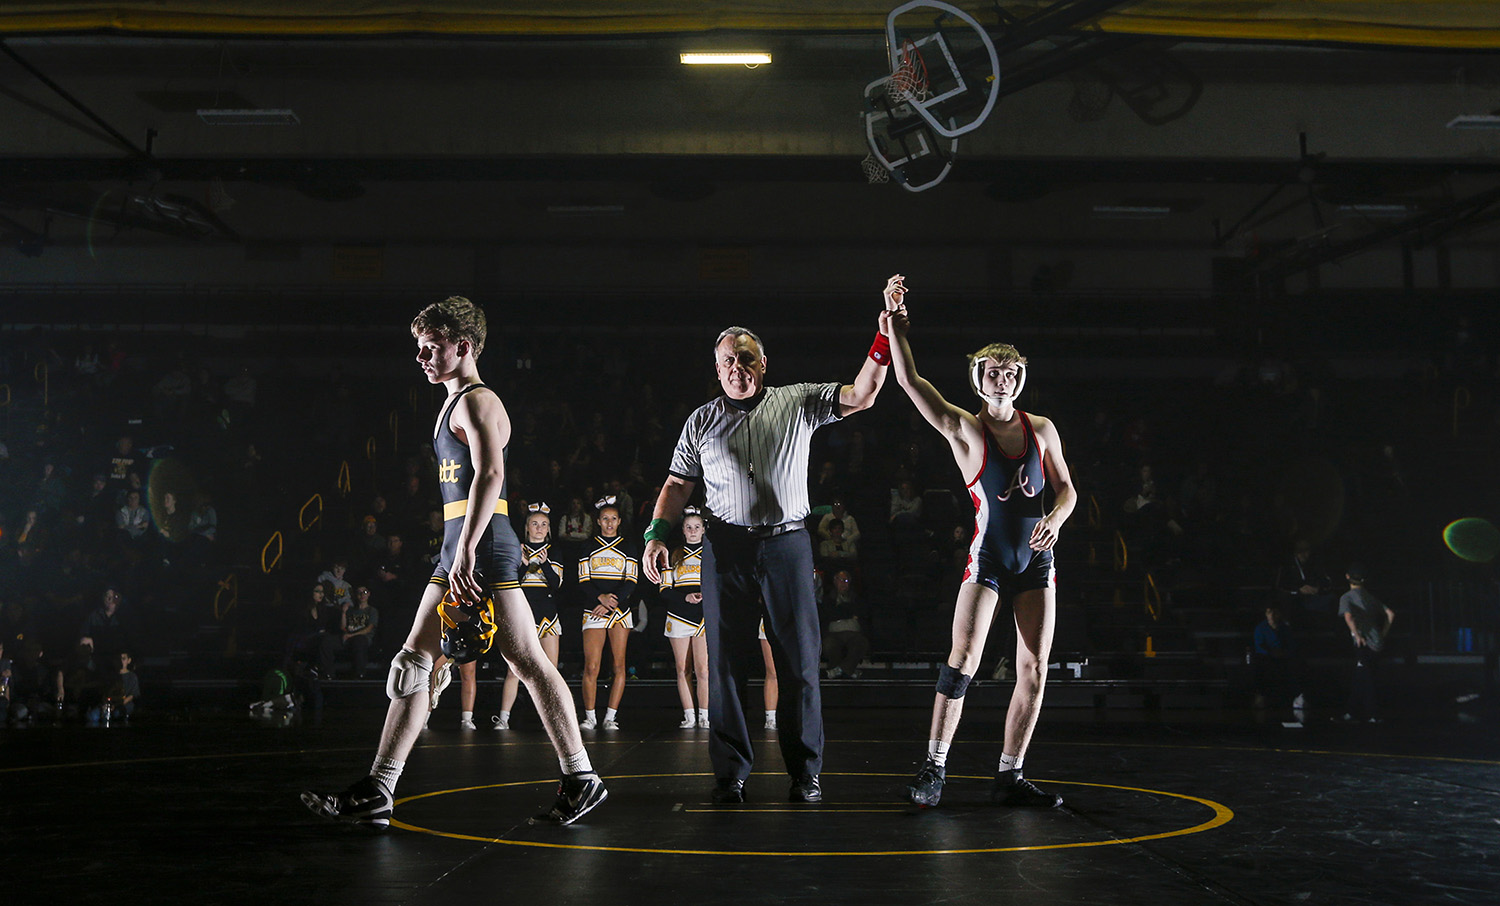 Bettendorf sophomore Voyen Adamson walks off the mat after losing his 126-weight match to Assumption senior Sean Casey during their dual at Bettendorf High School in Bettendorf, Iowa, on Wednesday, January 11, 2017. Bettendorf won the dual 36-35 on criteria after a tie.